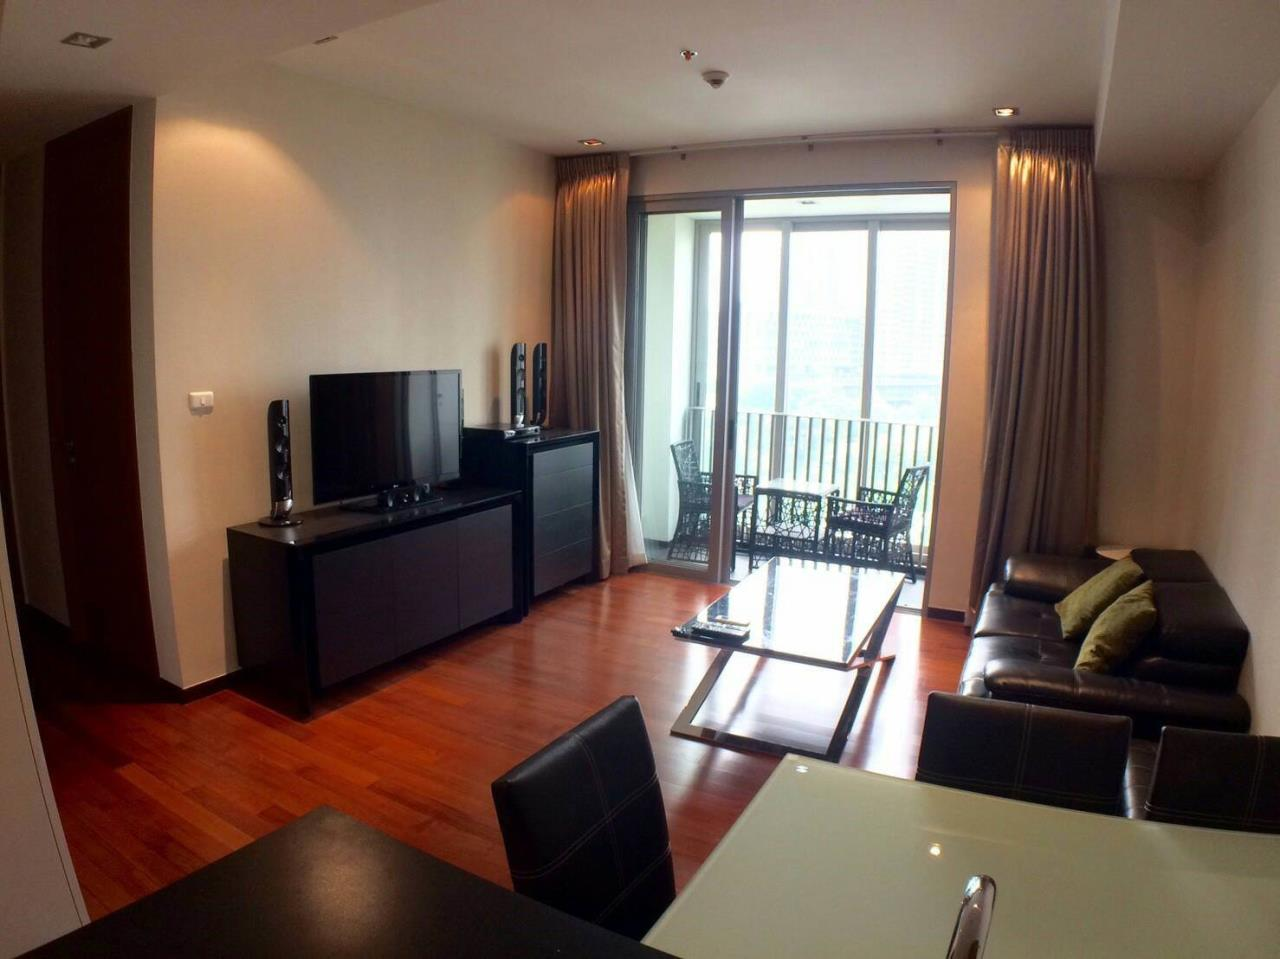 SALA ESTATE Agency's Ashton Morph Sukhumvit 38 - BTS Thonglor - Pets allows, Free shuttle service. 3